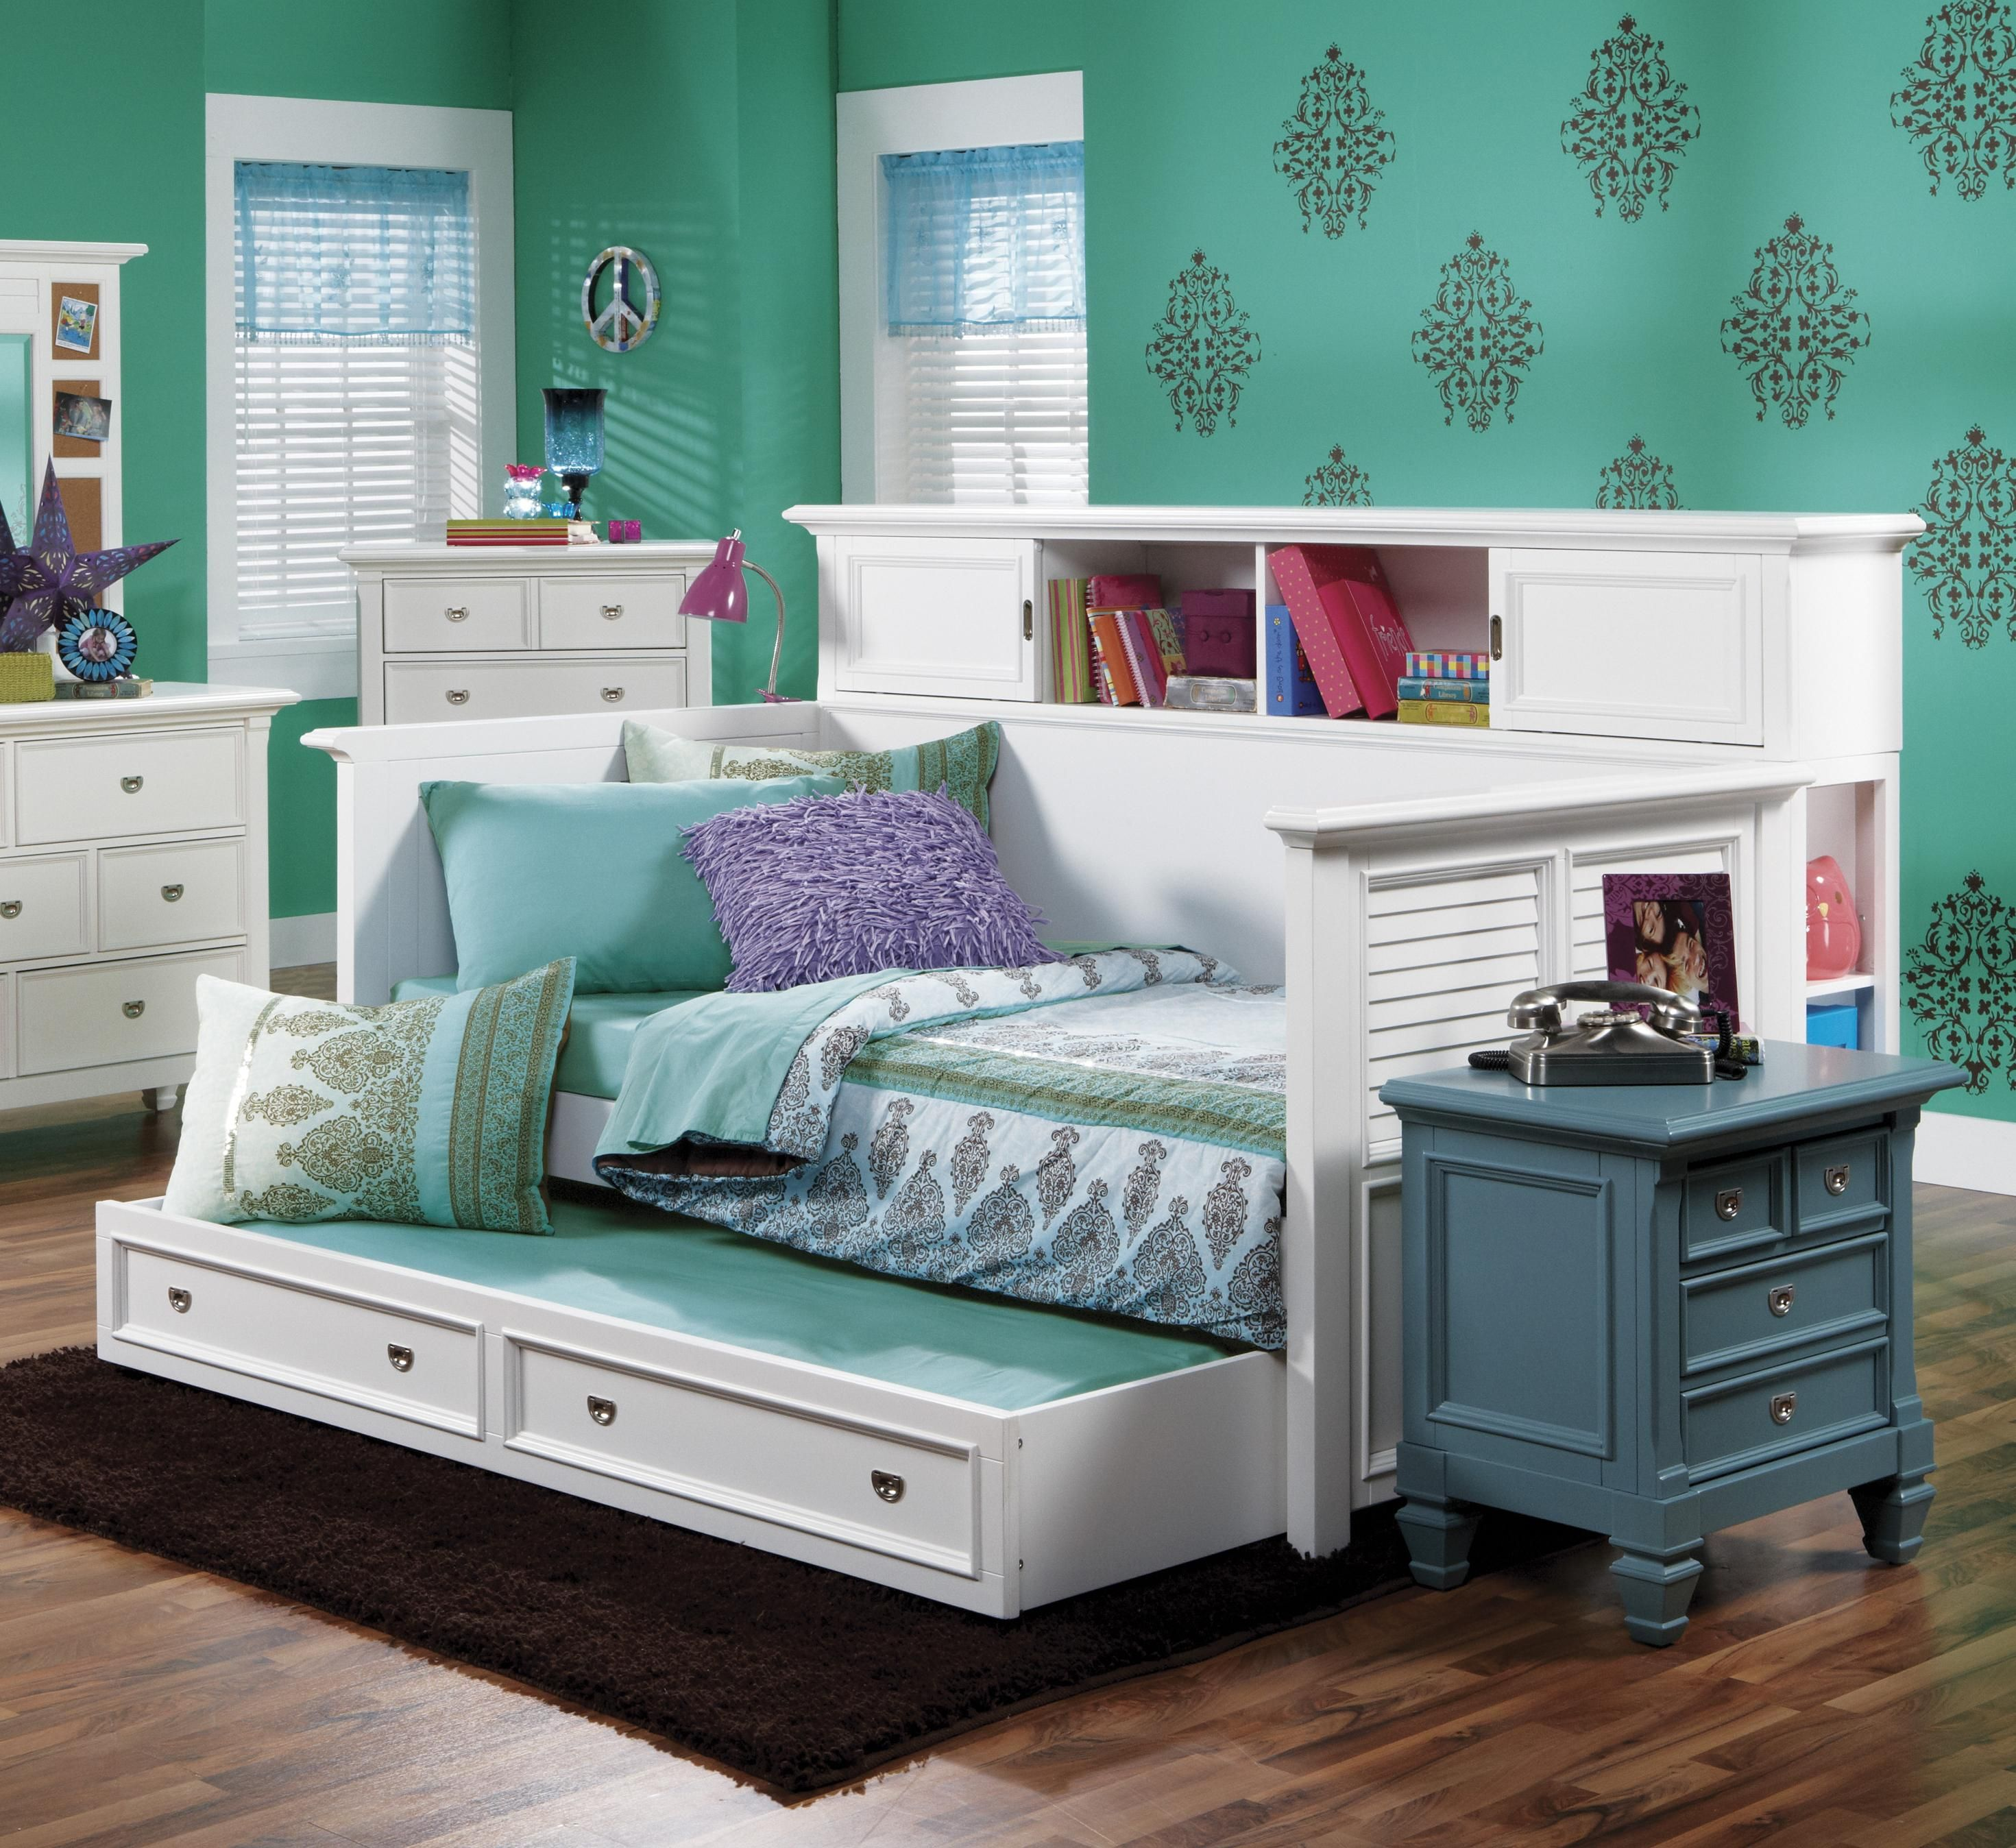 Day beds for teens -